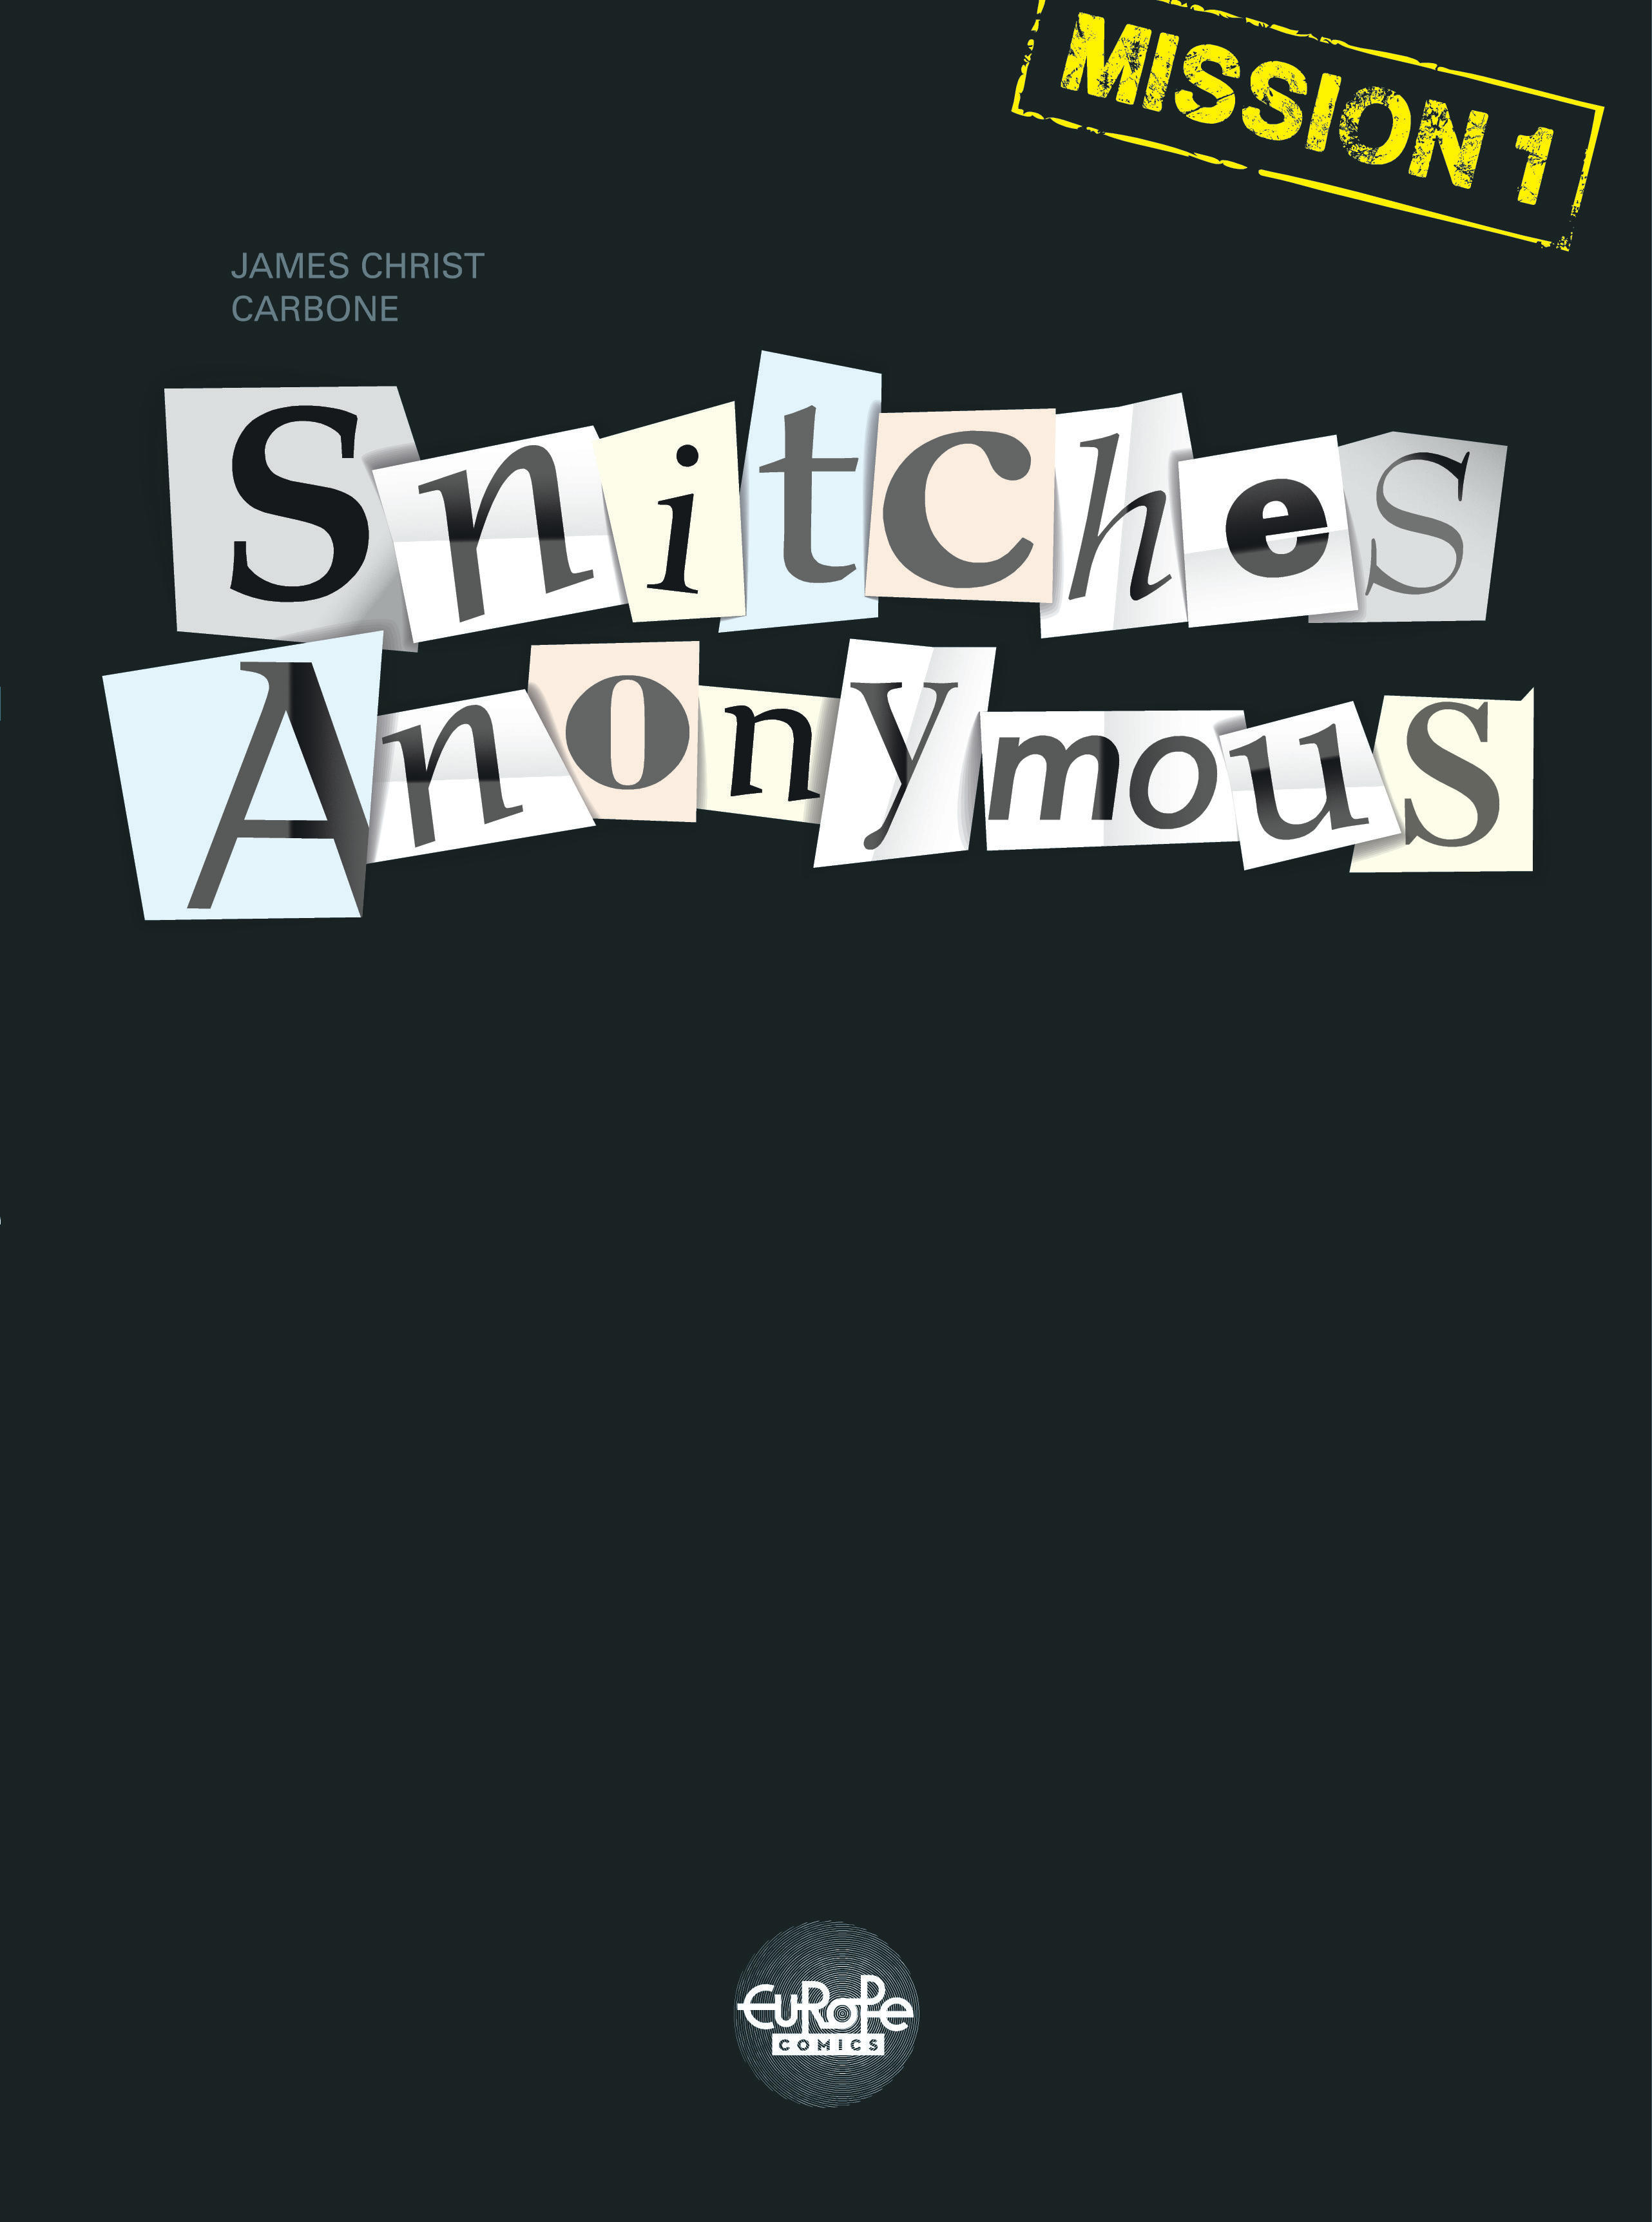 Snitches Anonymous - Mission 1 -  Carbone